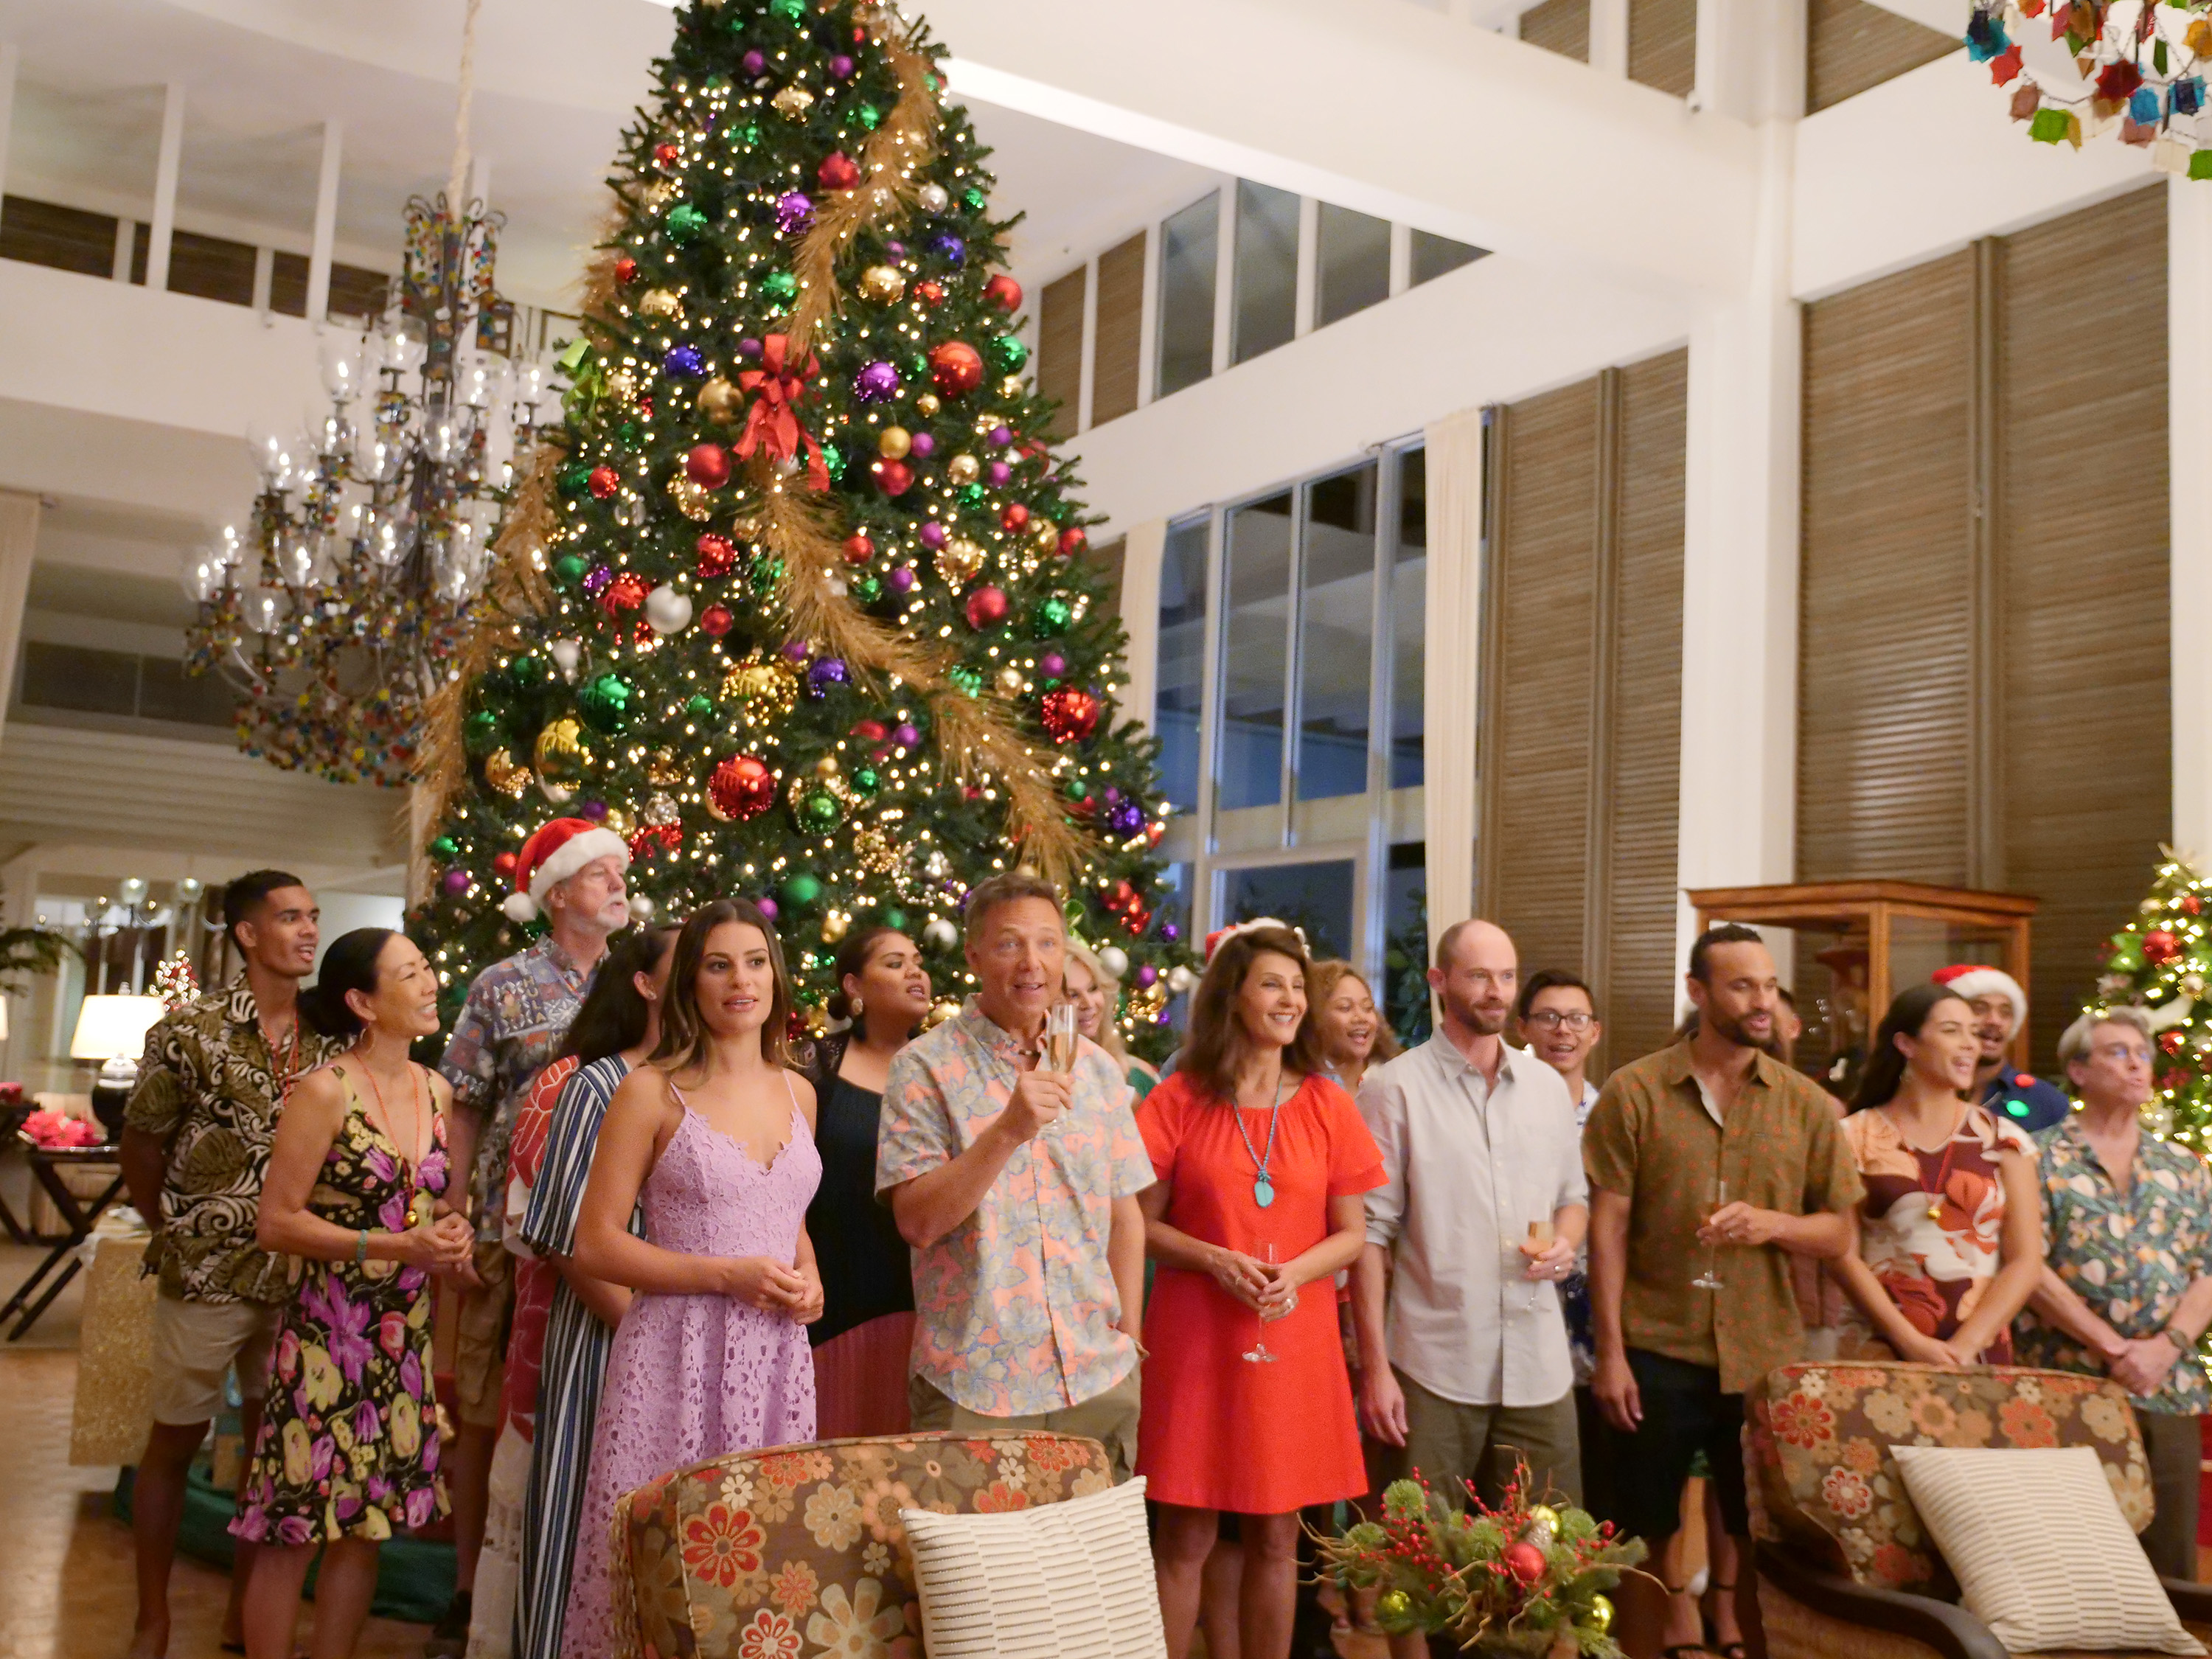 Christmas 2020 Rerun ABC's Holiday Shows, Specials and Movies Schedule 2019 | ABC Updates